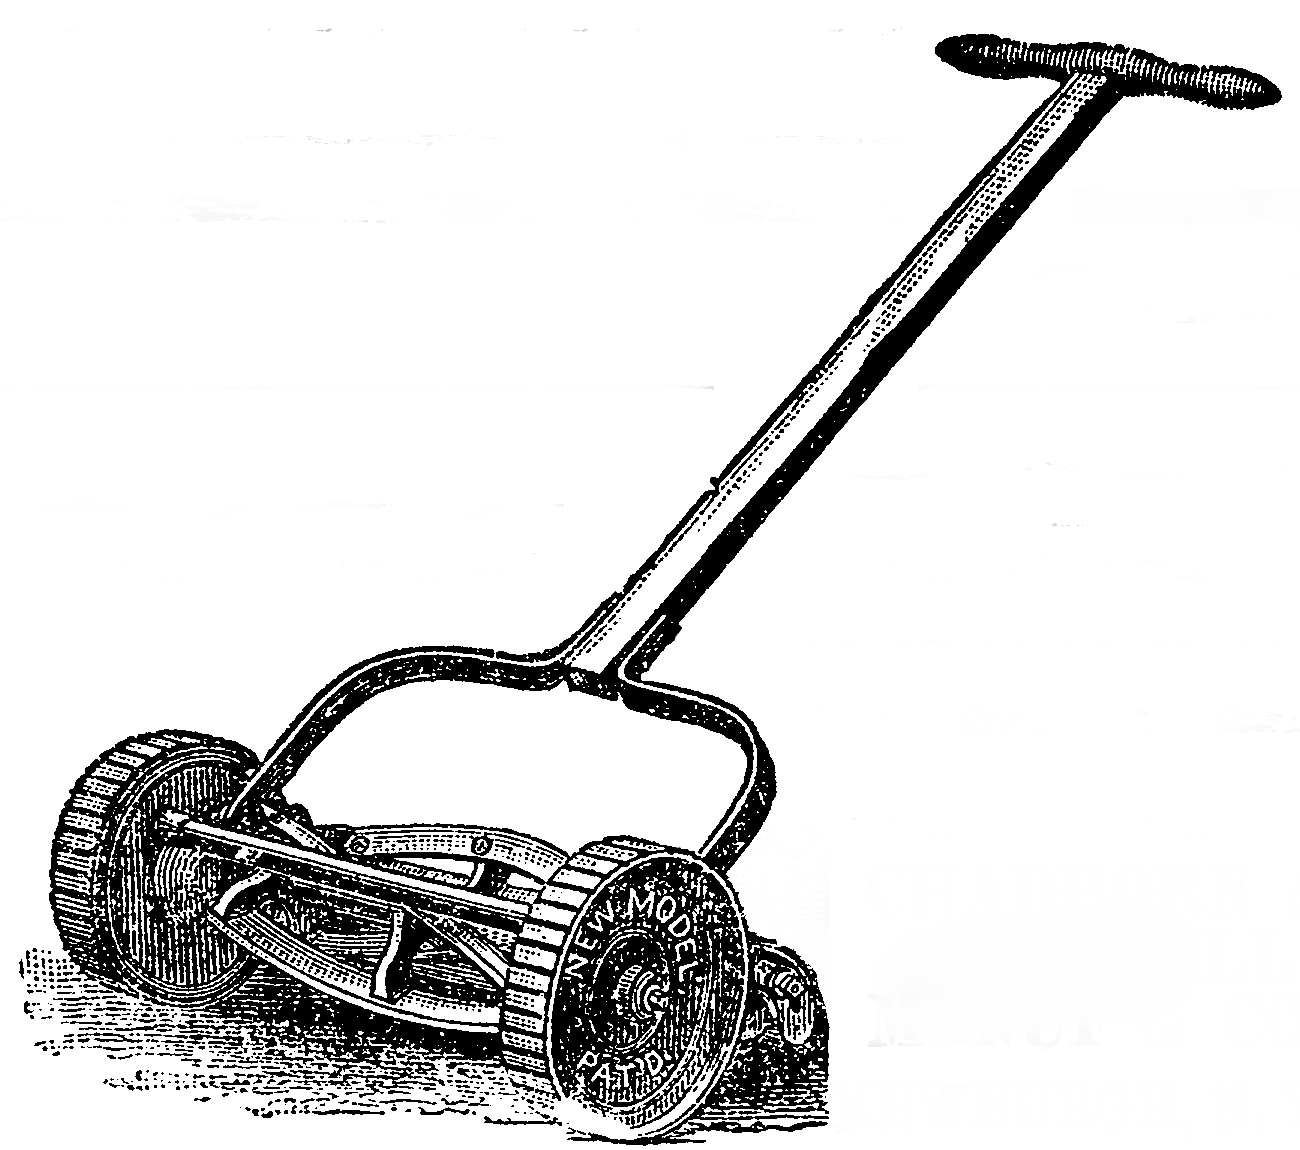 A cylinder (reel) mower